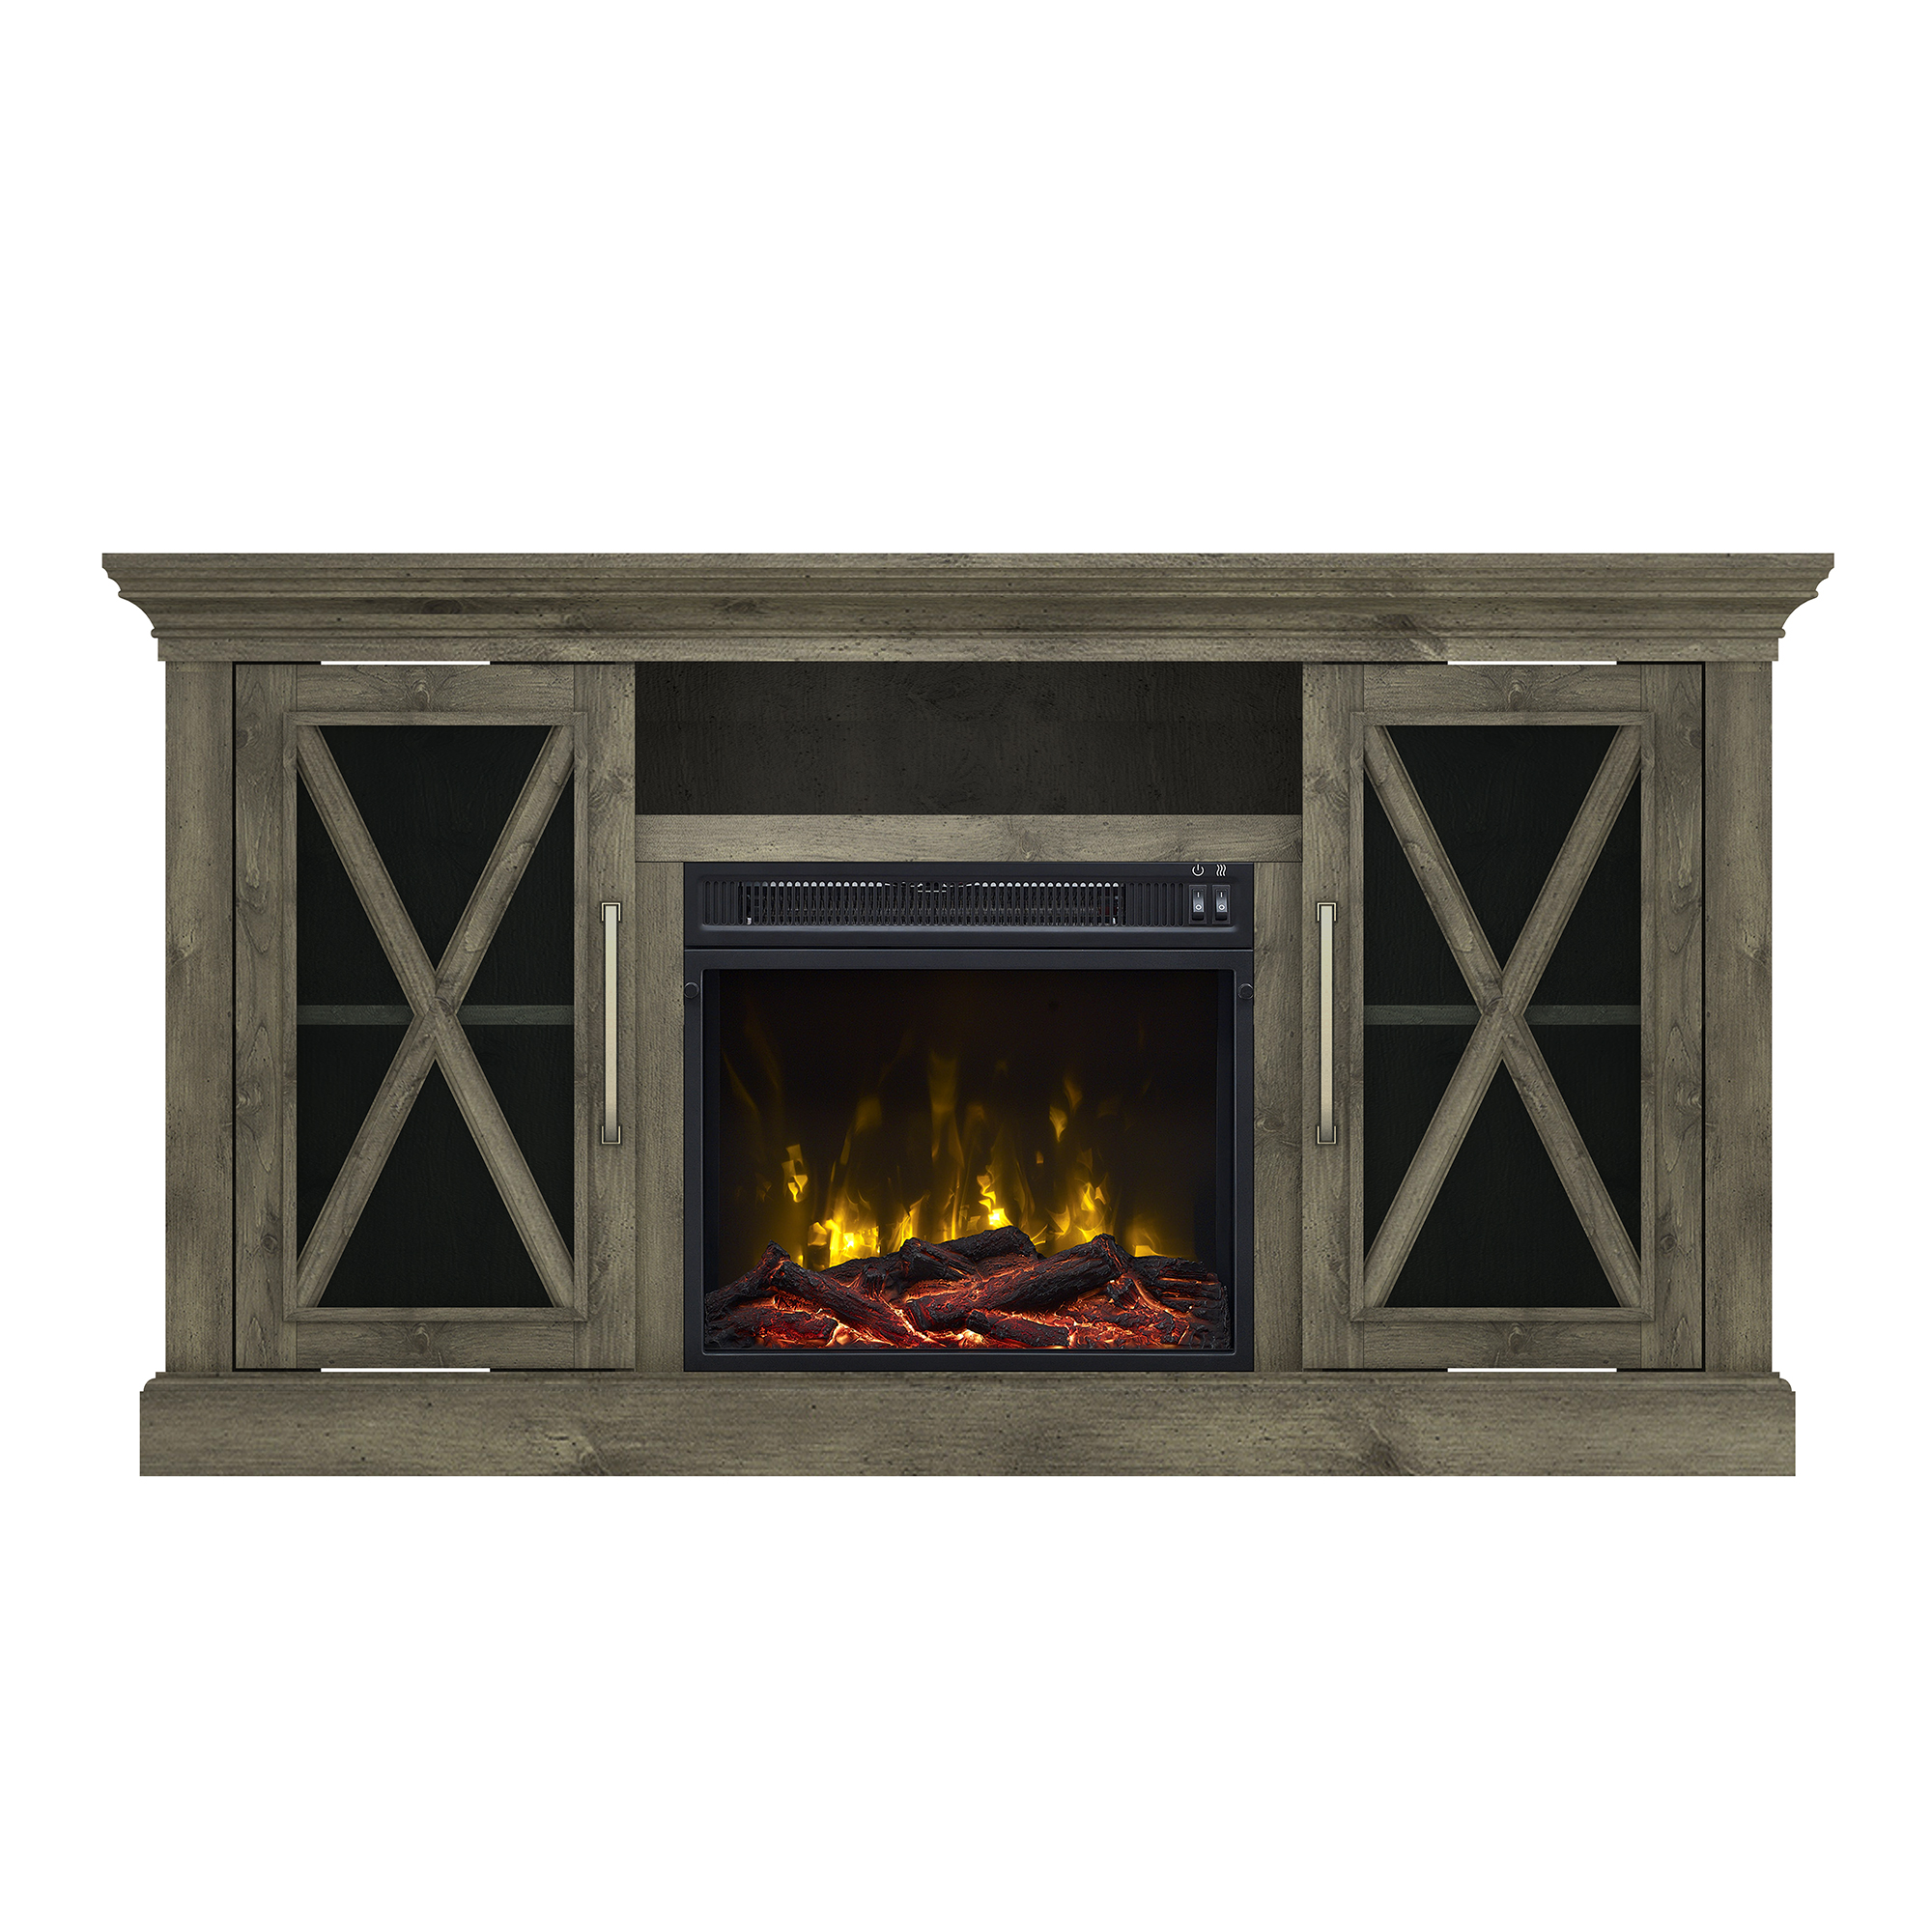 "Society Hill Spanish Gray TV Stand for TVs up to 60"" with Electric Fireplace"